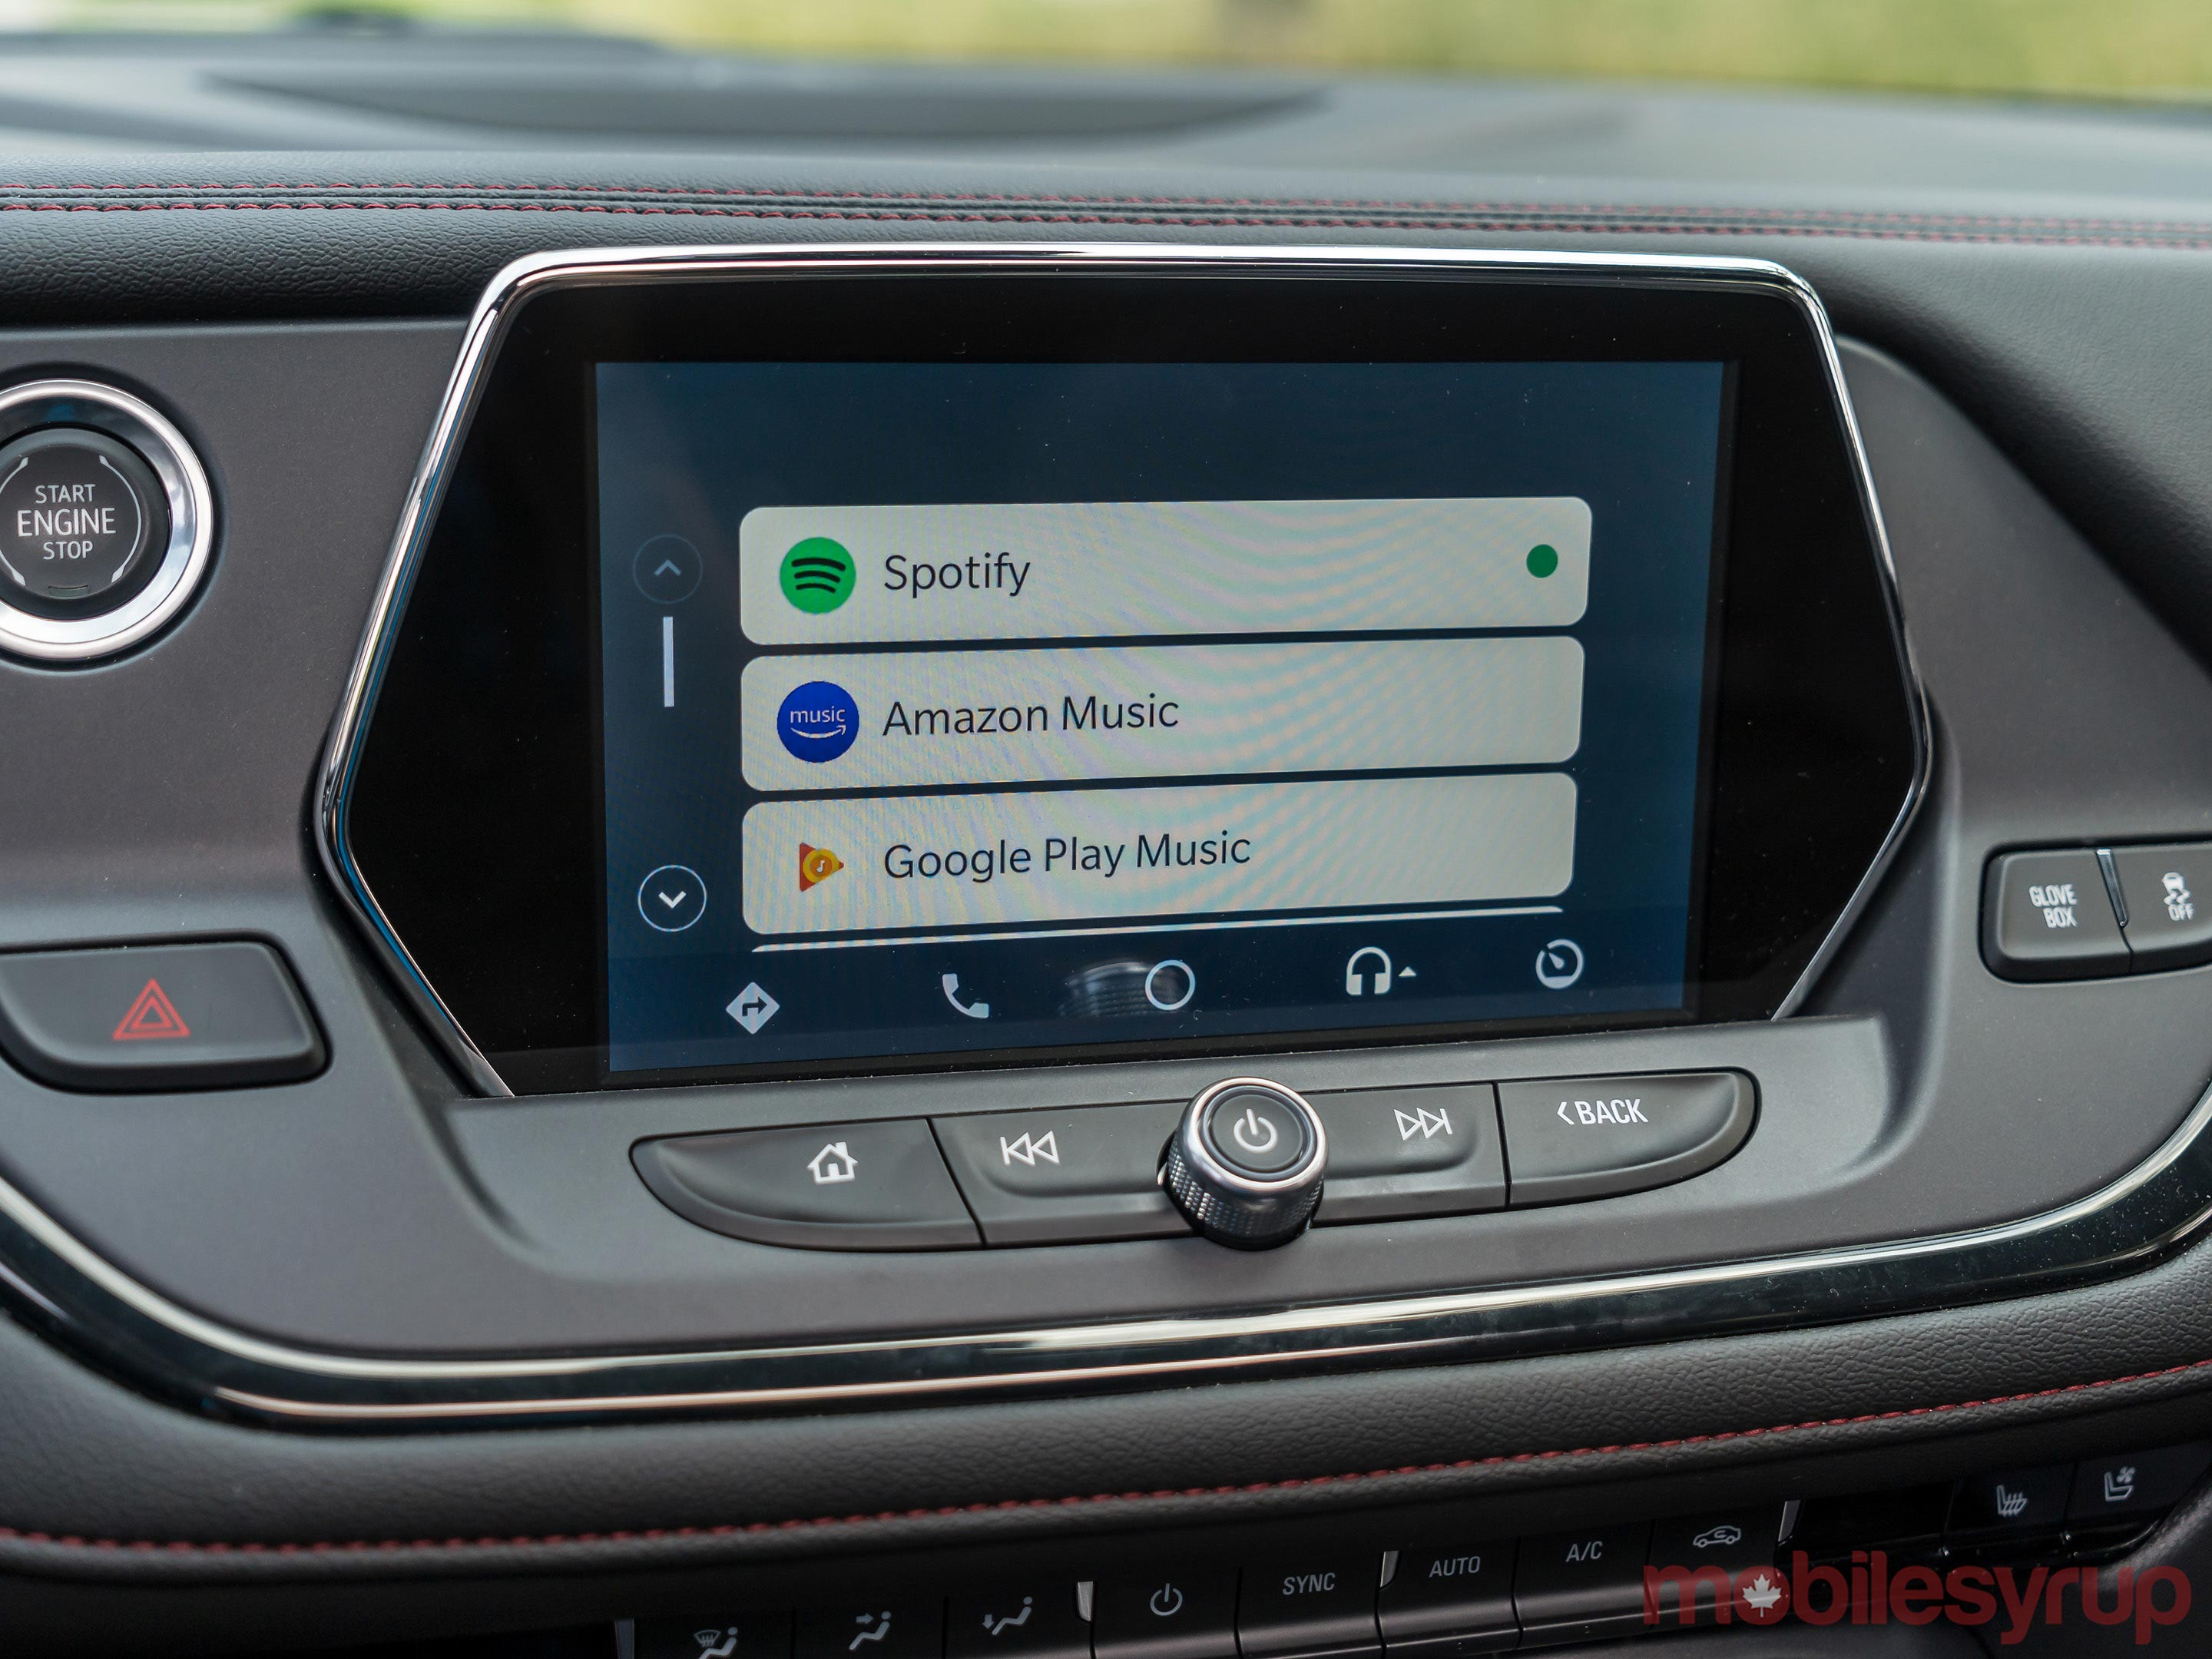 Here is a quick fix if the new Android Auto interface doesn